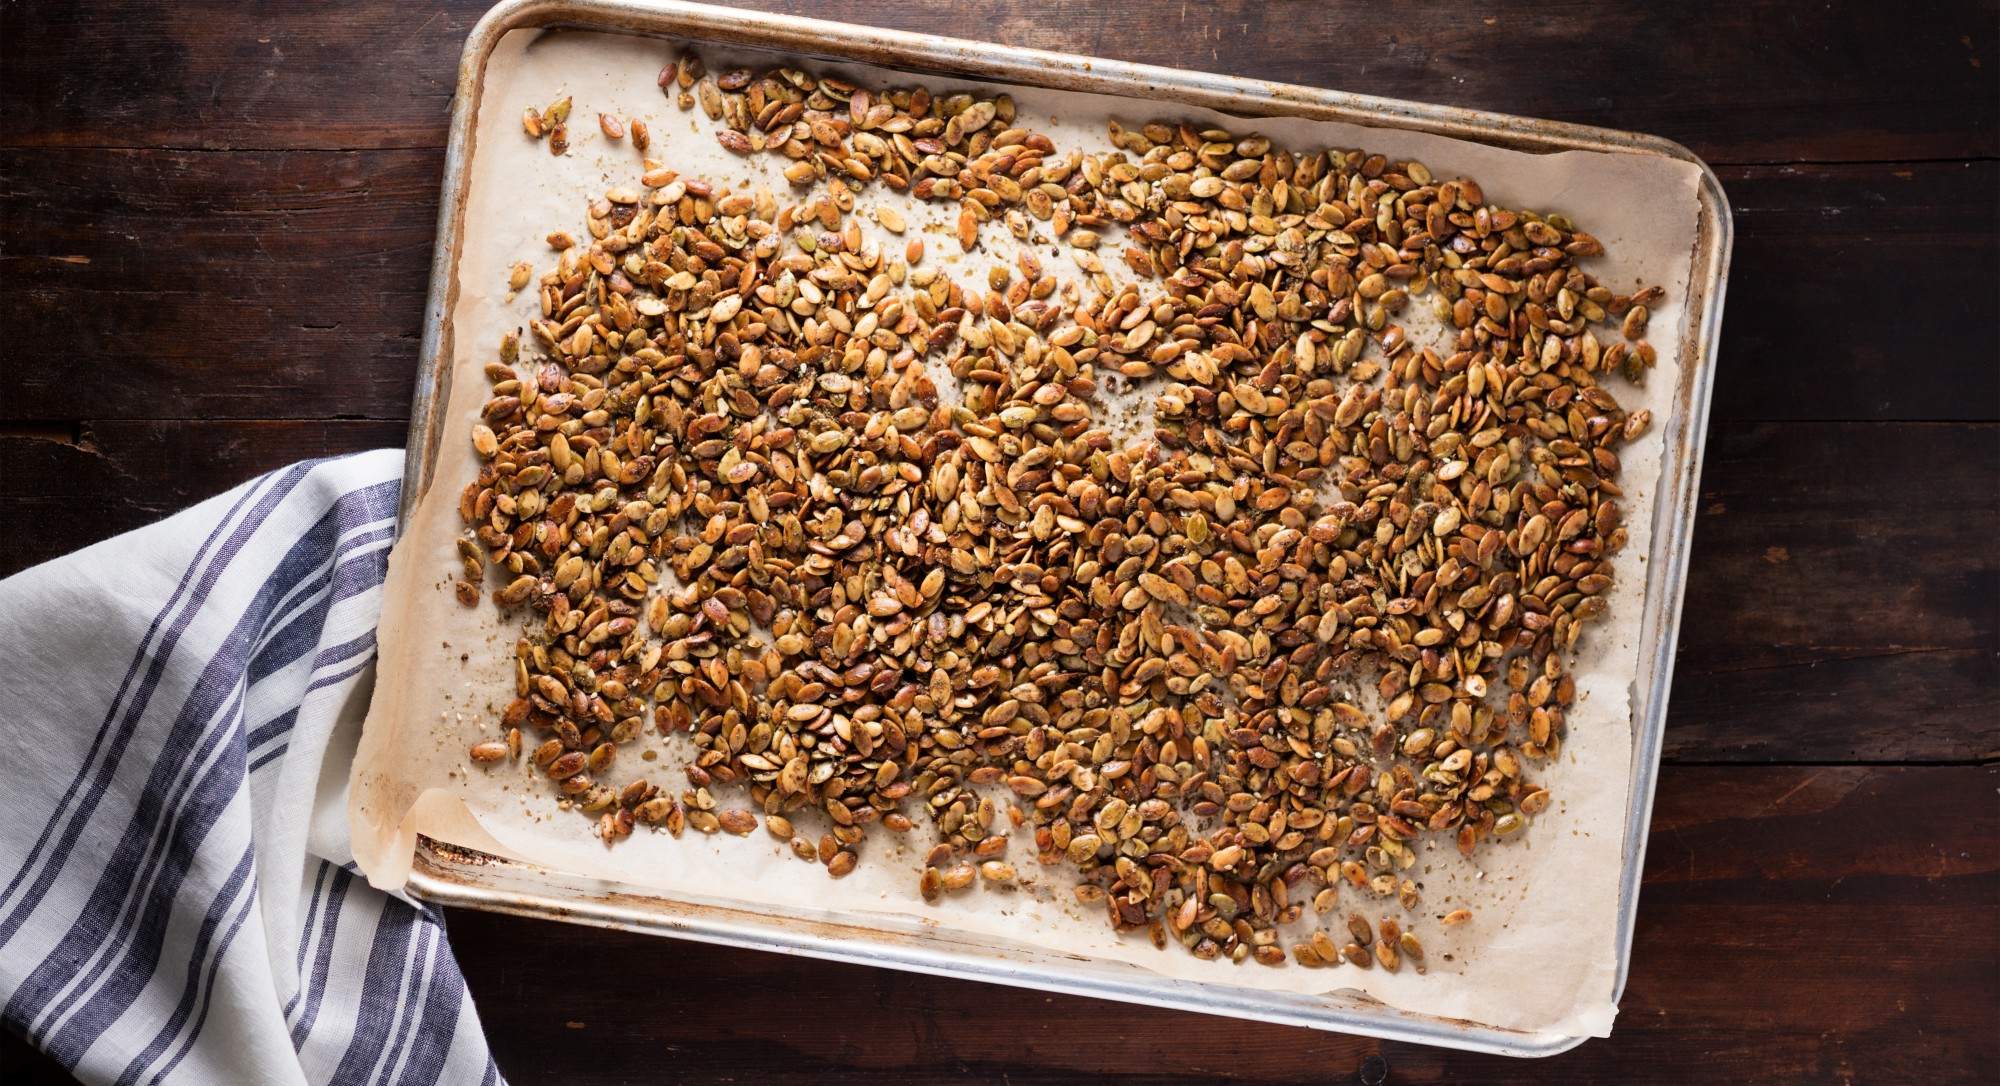 Amp Up Your Roasted Pumpkin Seeds With These Exciting Spice Blends